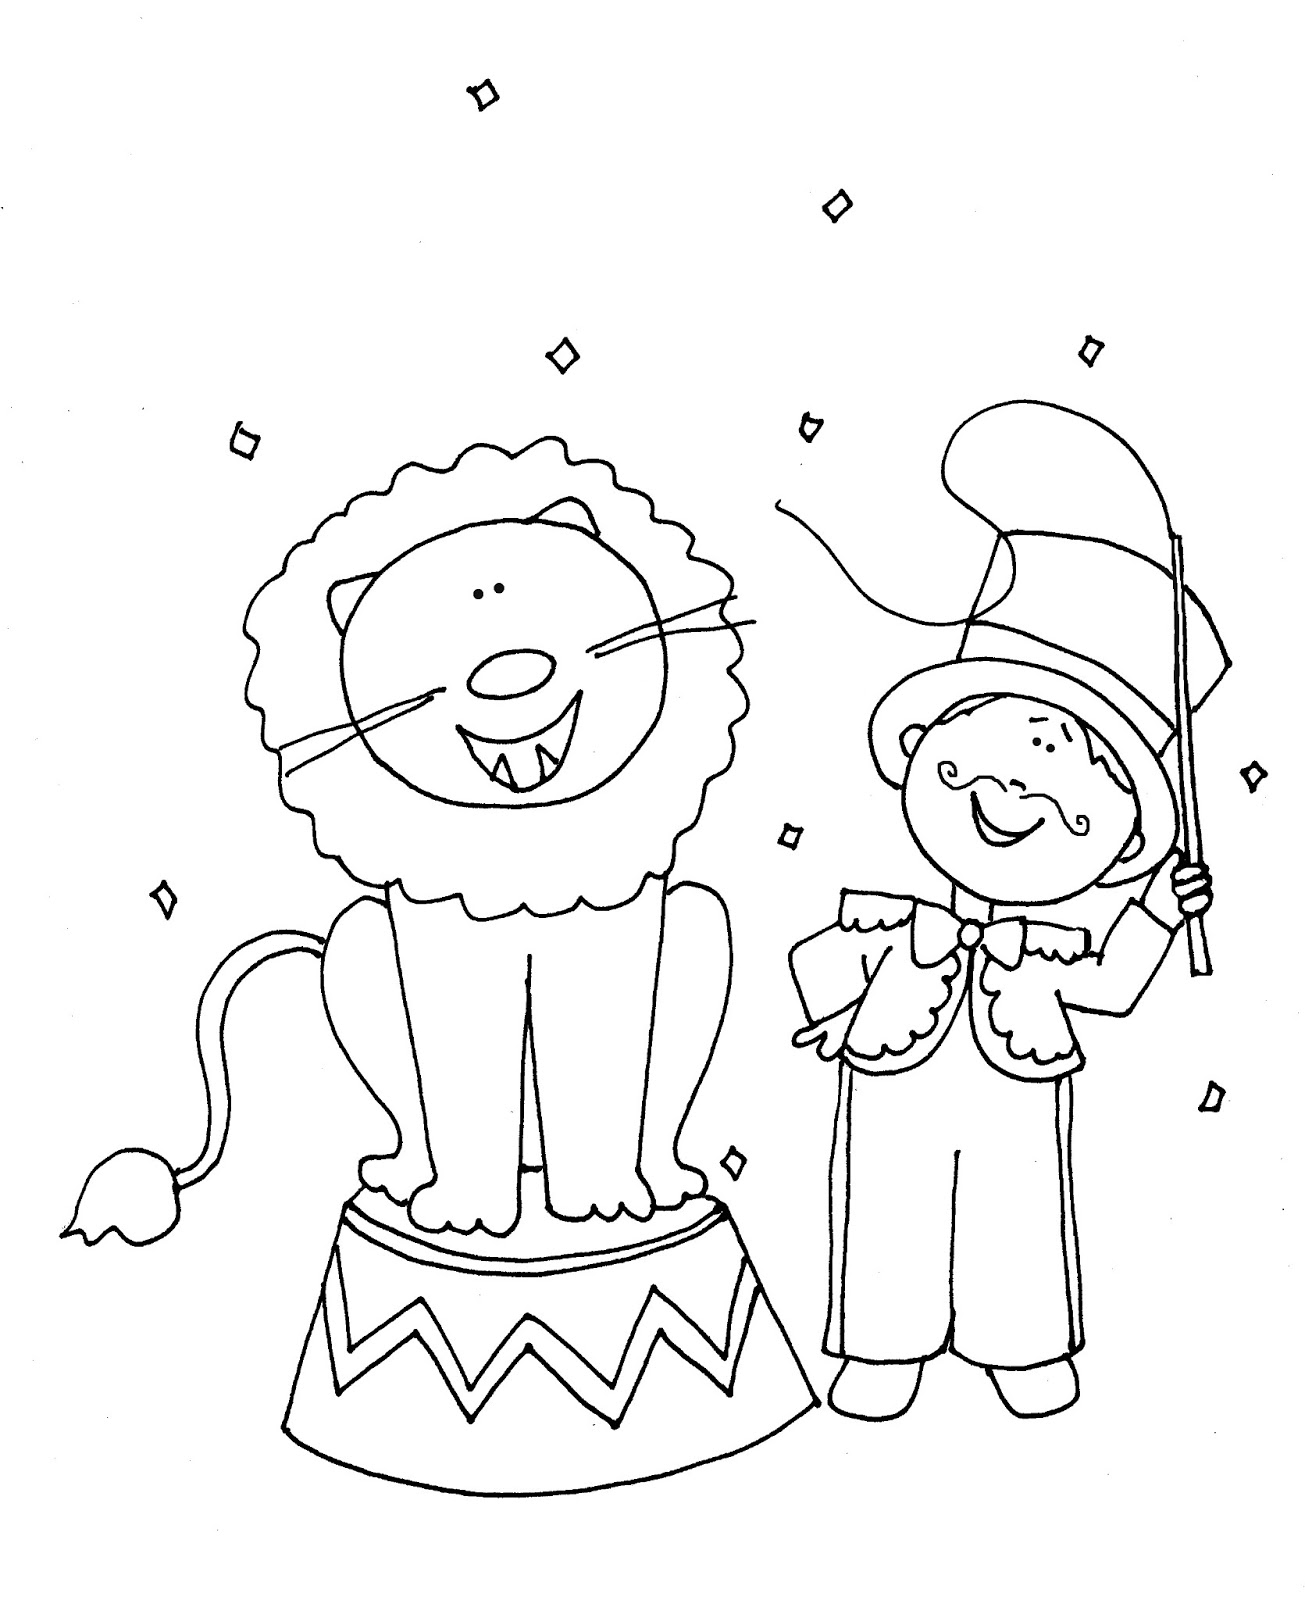 free circus lion coloring pages - photo#36